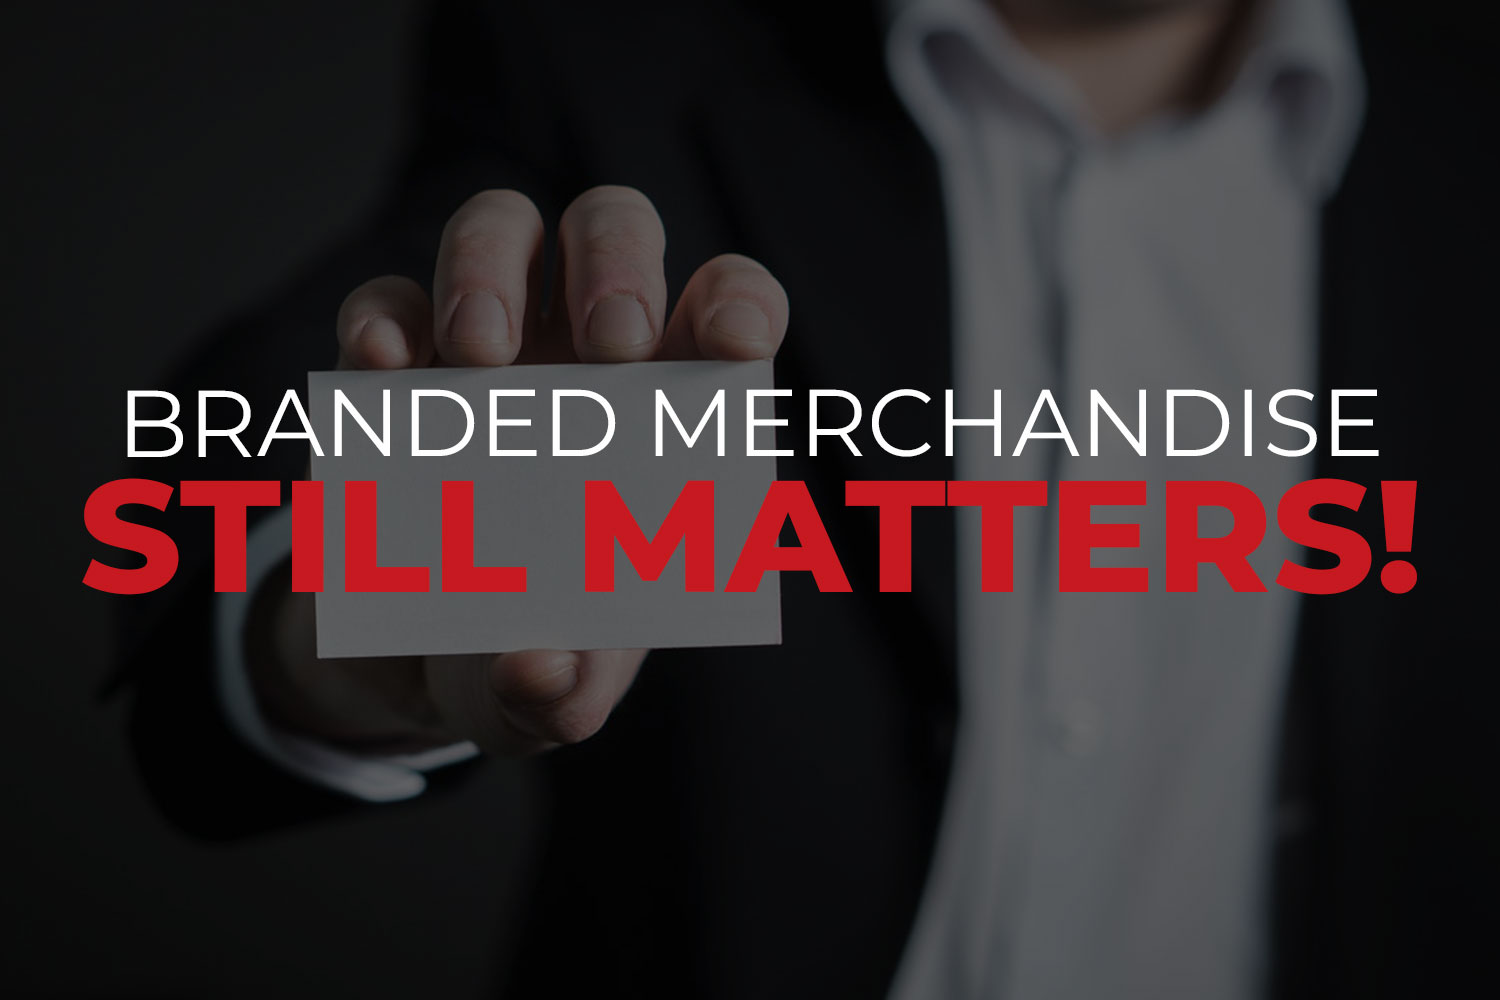 4 Reasons Why Merchandise Still Matters